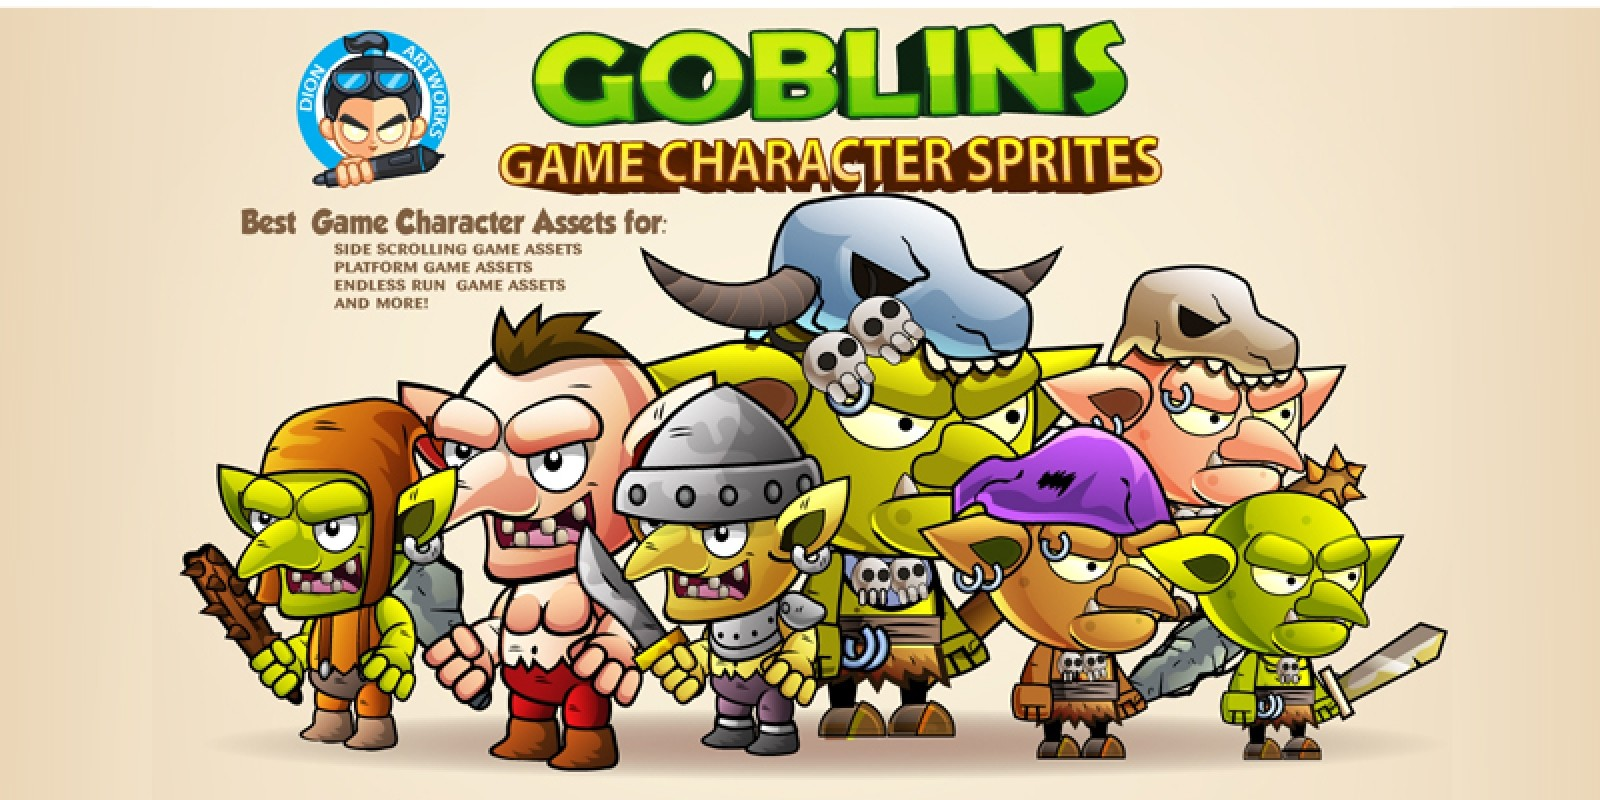 Goblins Game Character Sprites